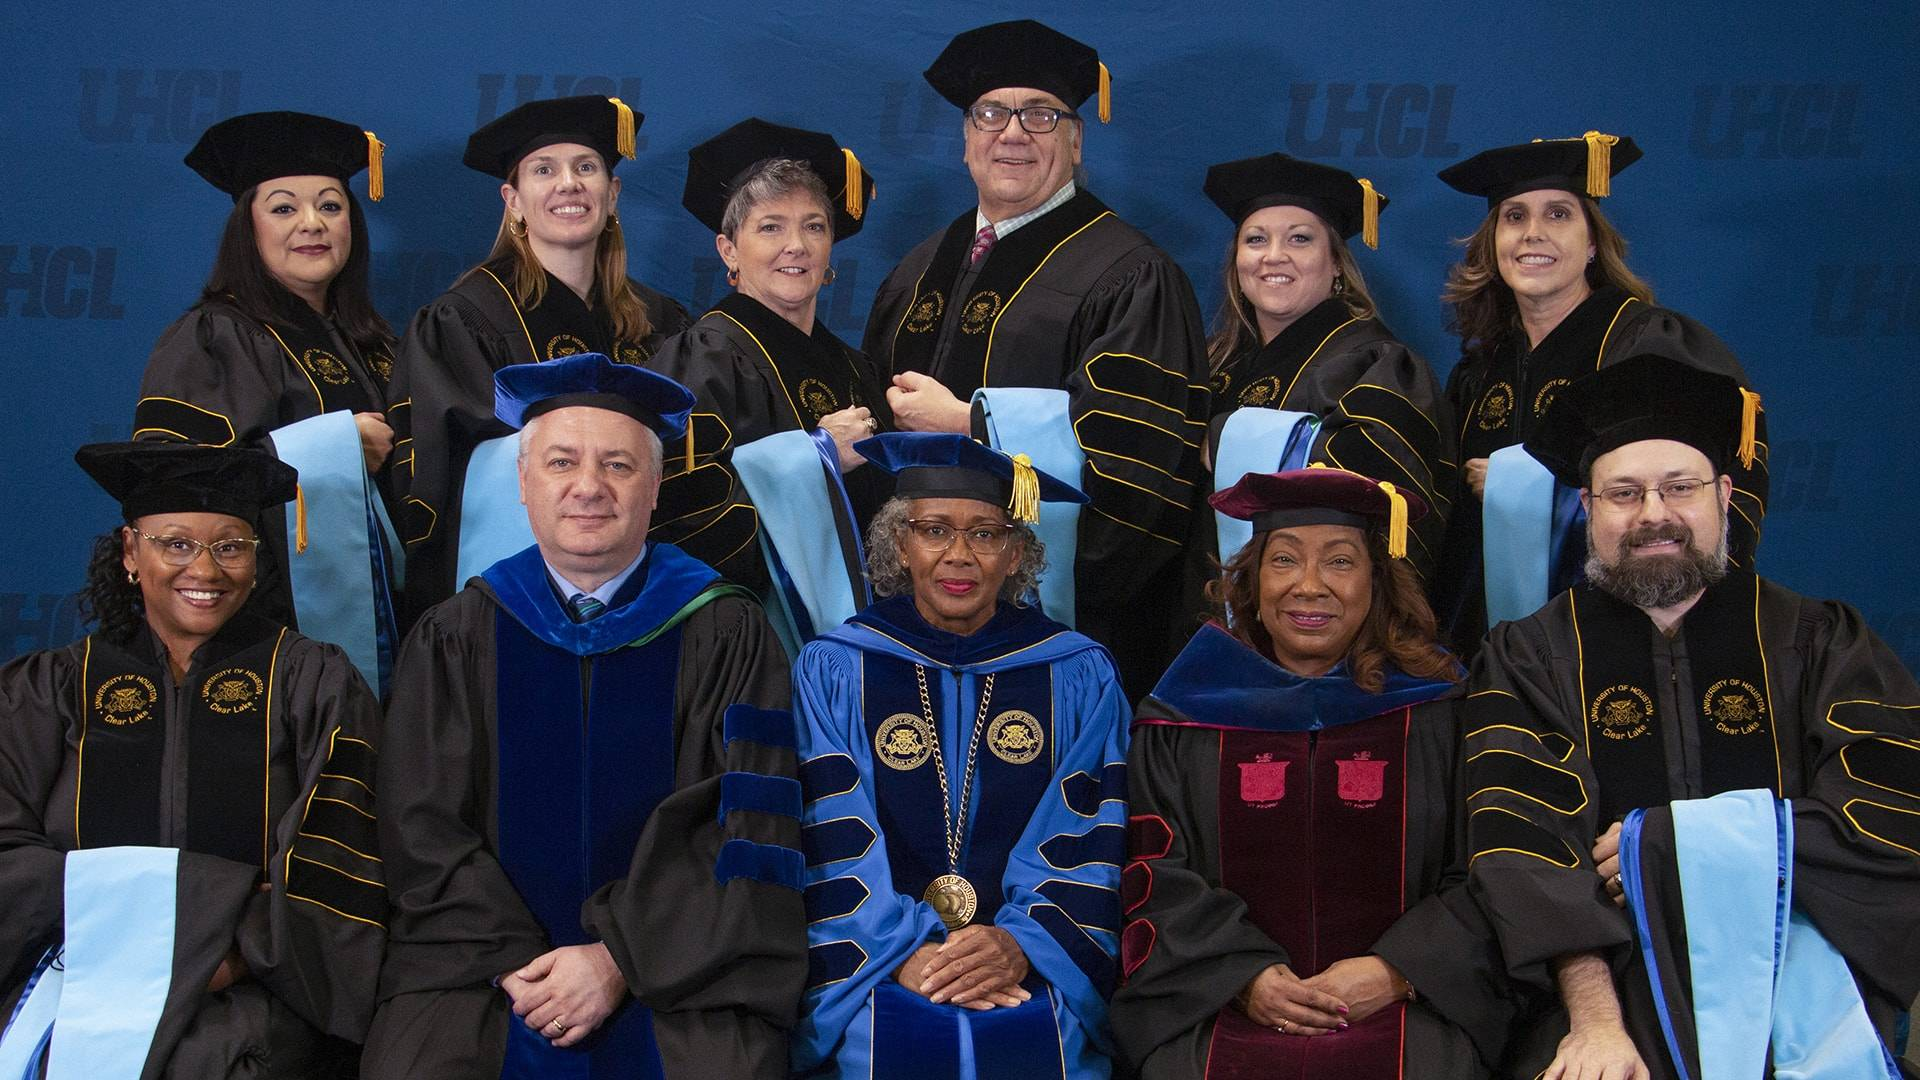 Eight students receive doctorates at UHCL fall 2019 commencement